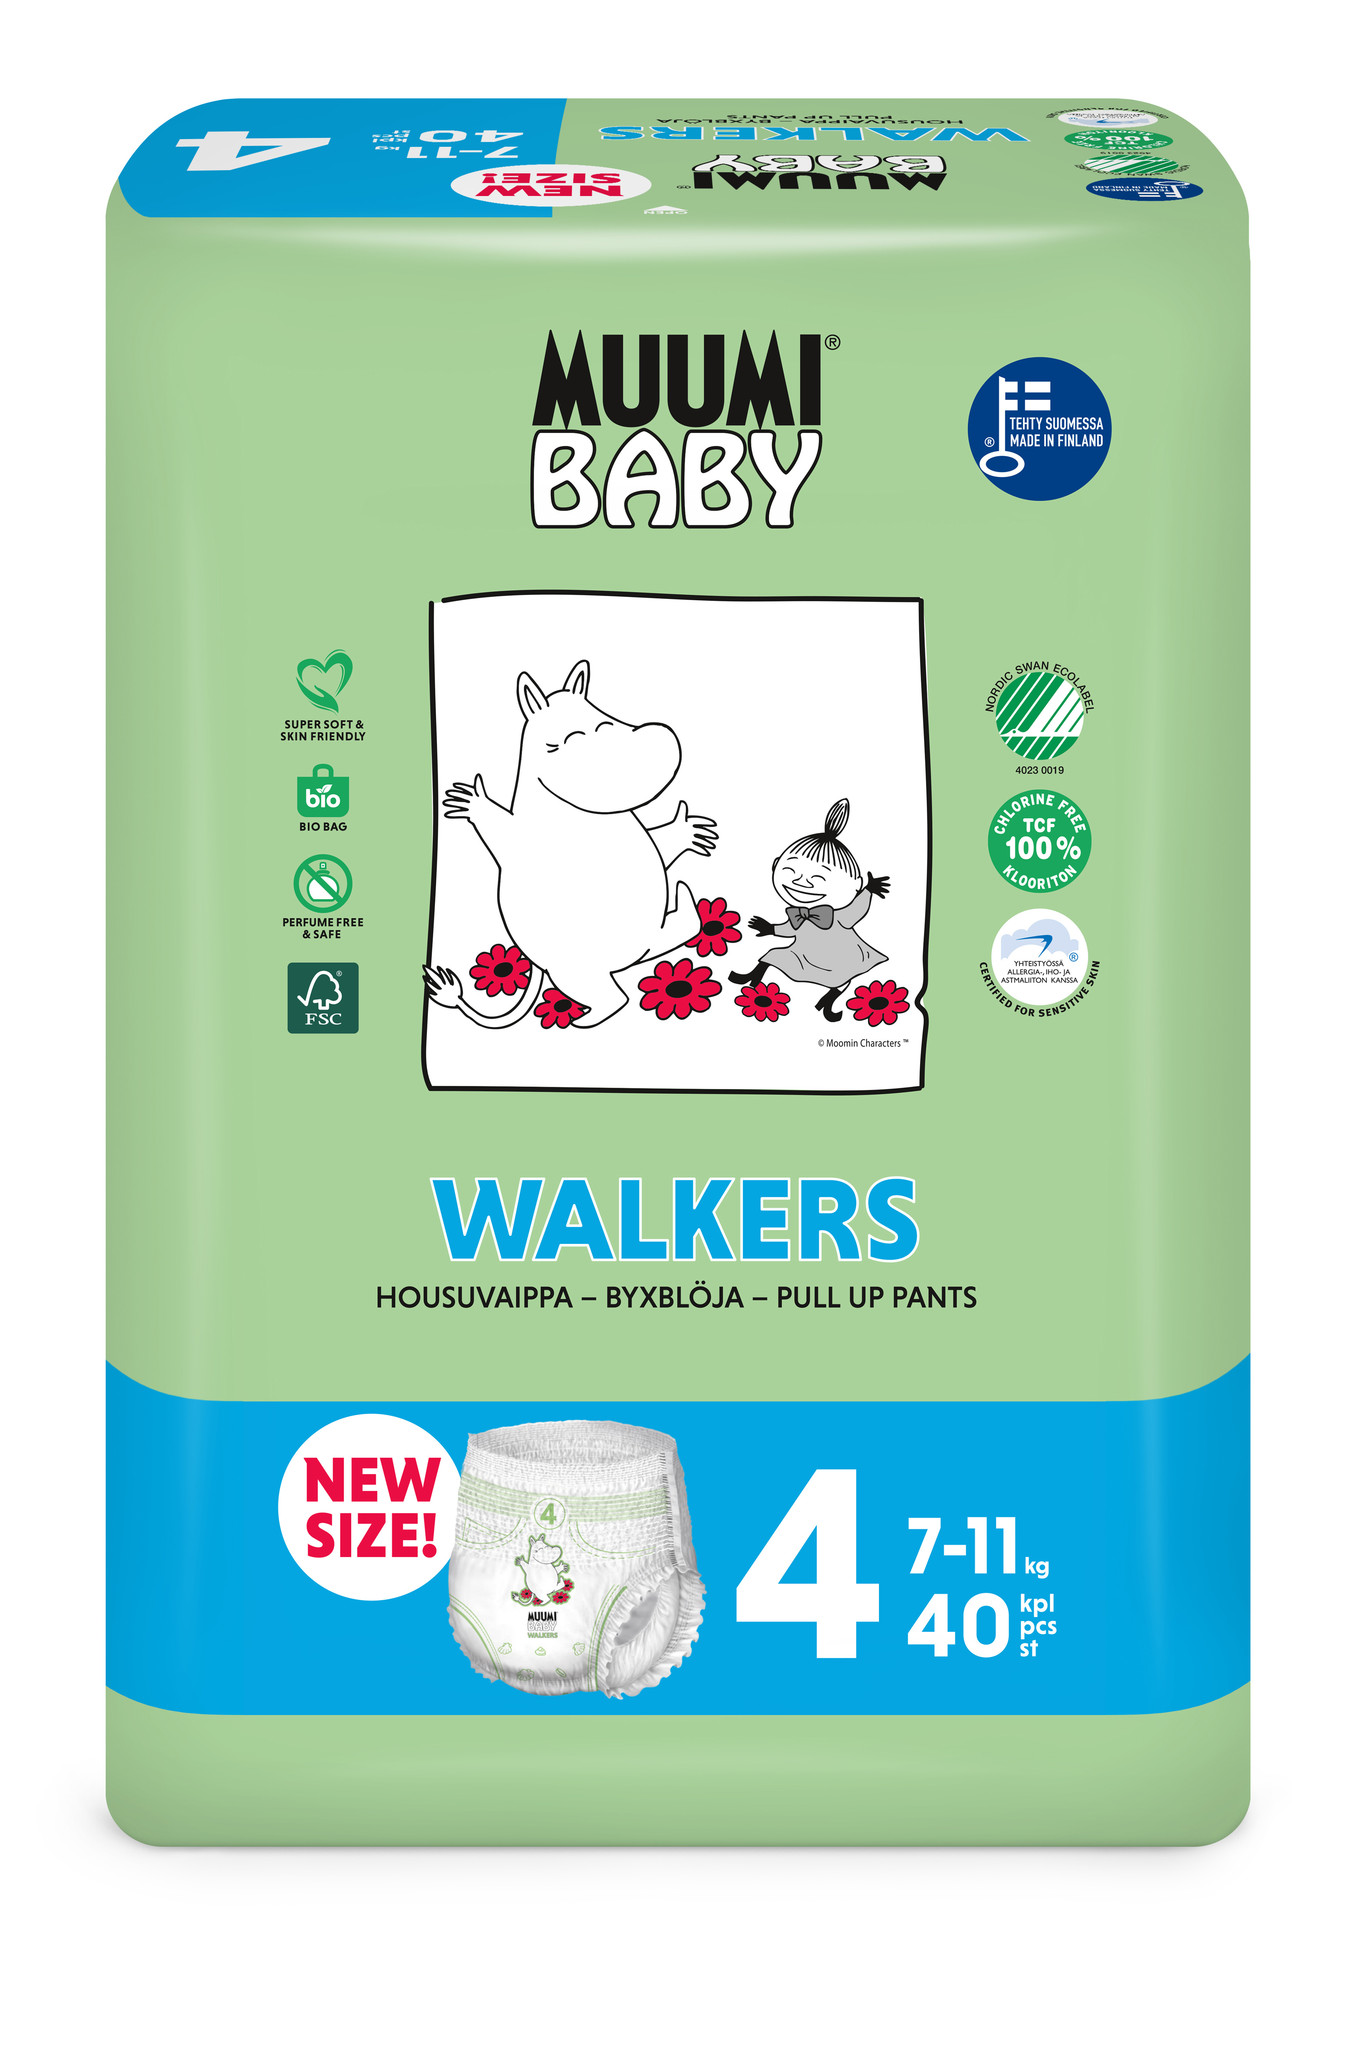 Muumi Baby Muumi Baby Eco Disposable diapers and nappy pants - Copy - Copy - Copy - Copy - Copy